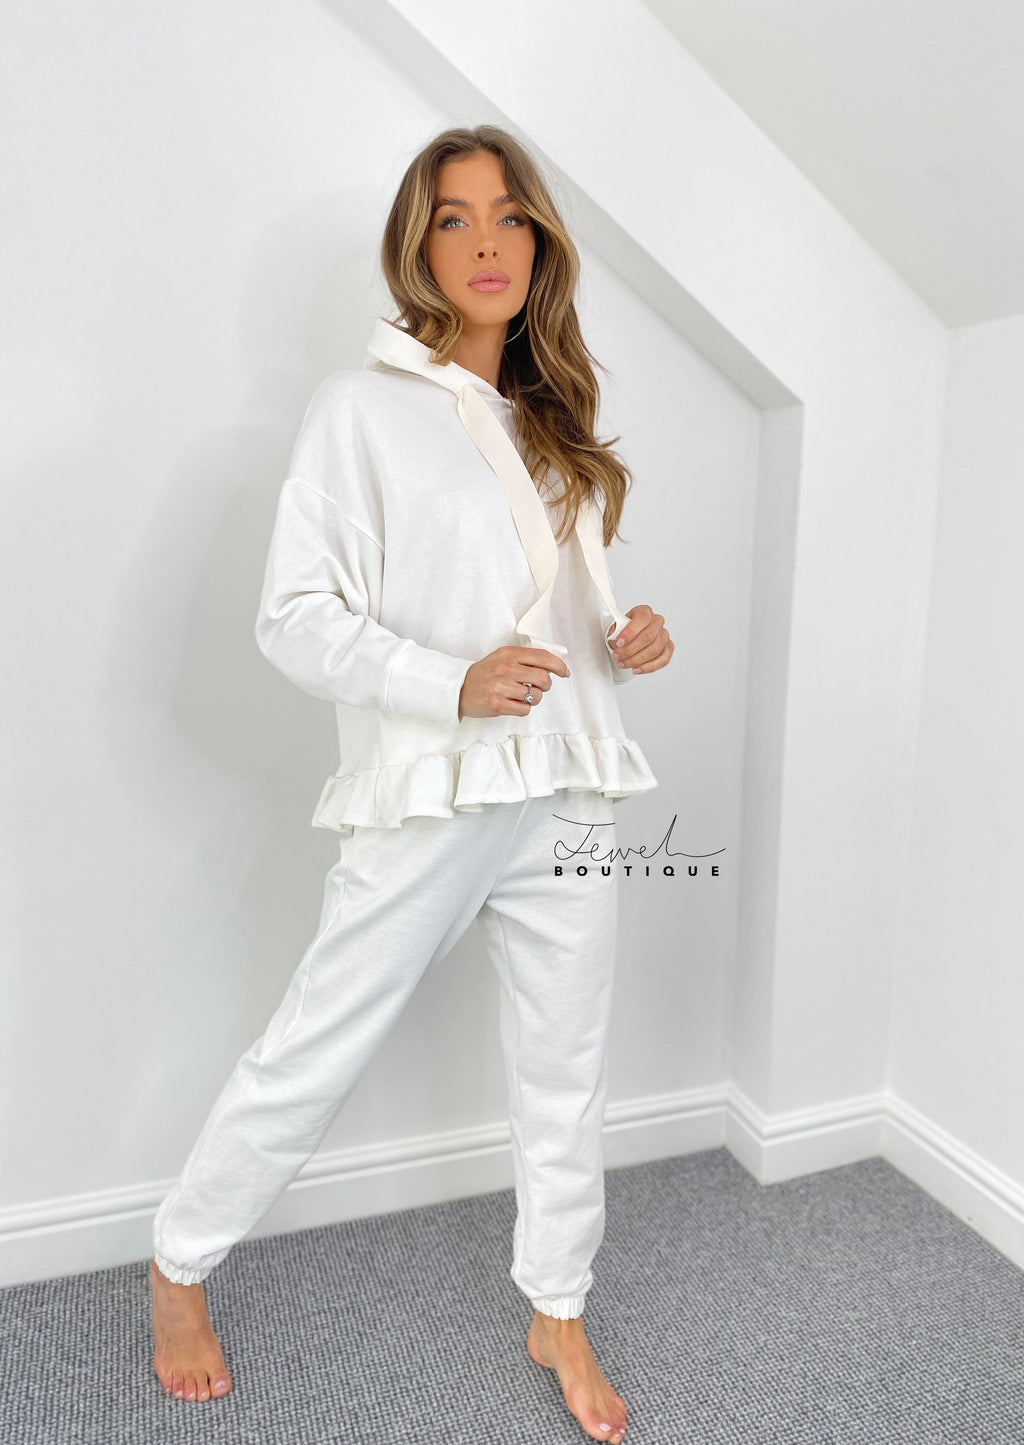 Frill hem women's fleece lined tracksuit / lounge set